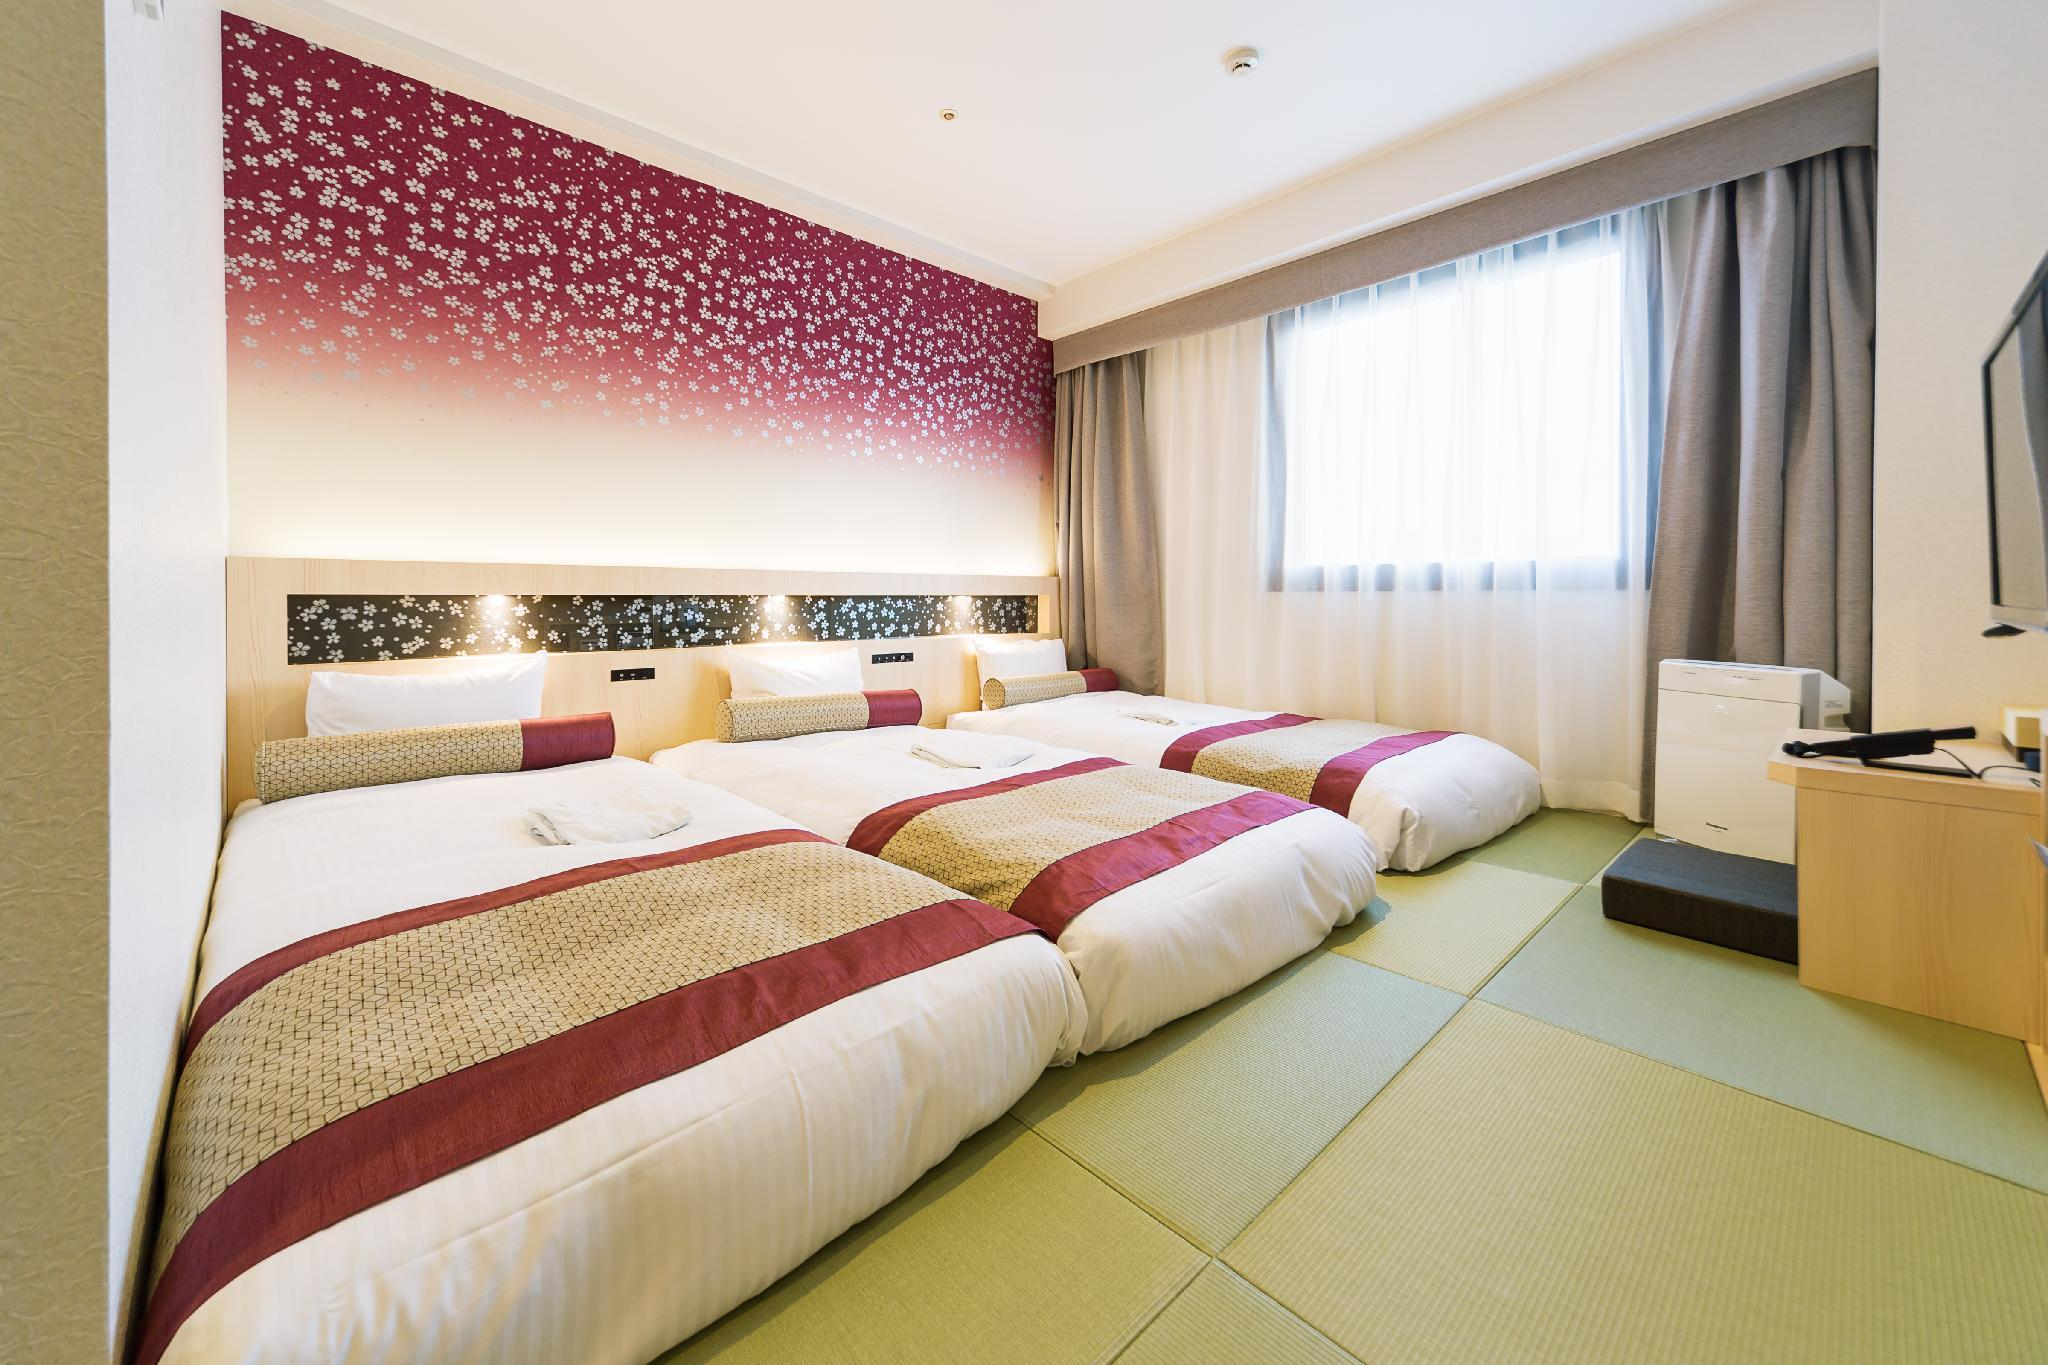 Kamar Triple Sakura – Baru Direnovasi (Sakura Triple Room - Newly Renovated)